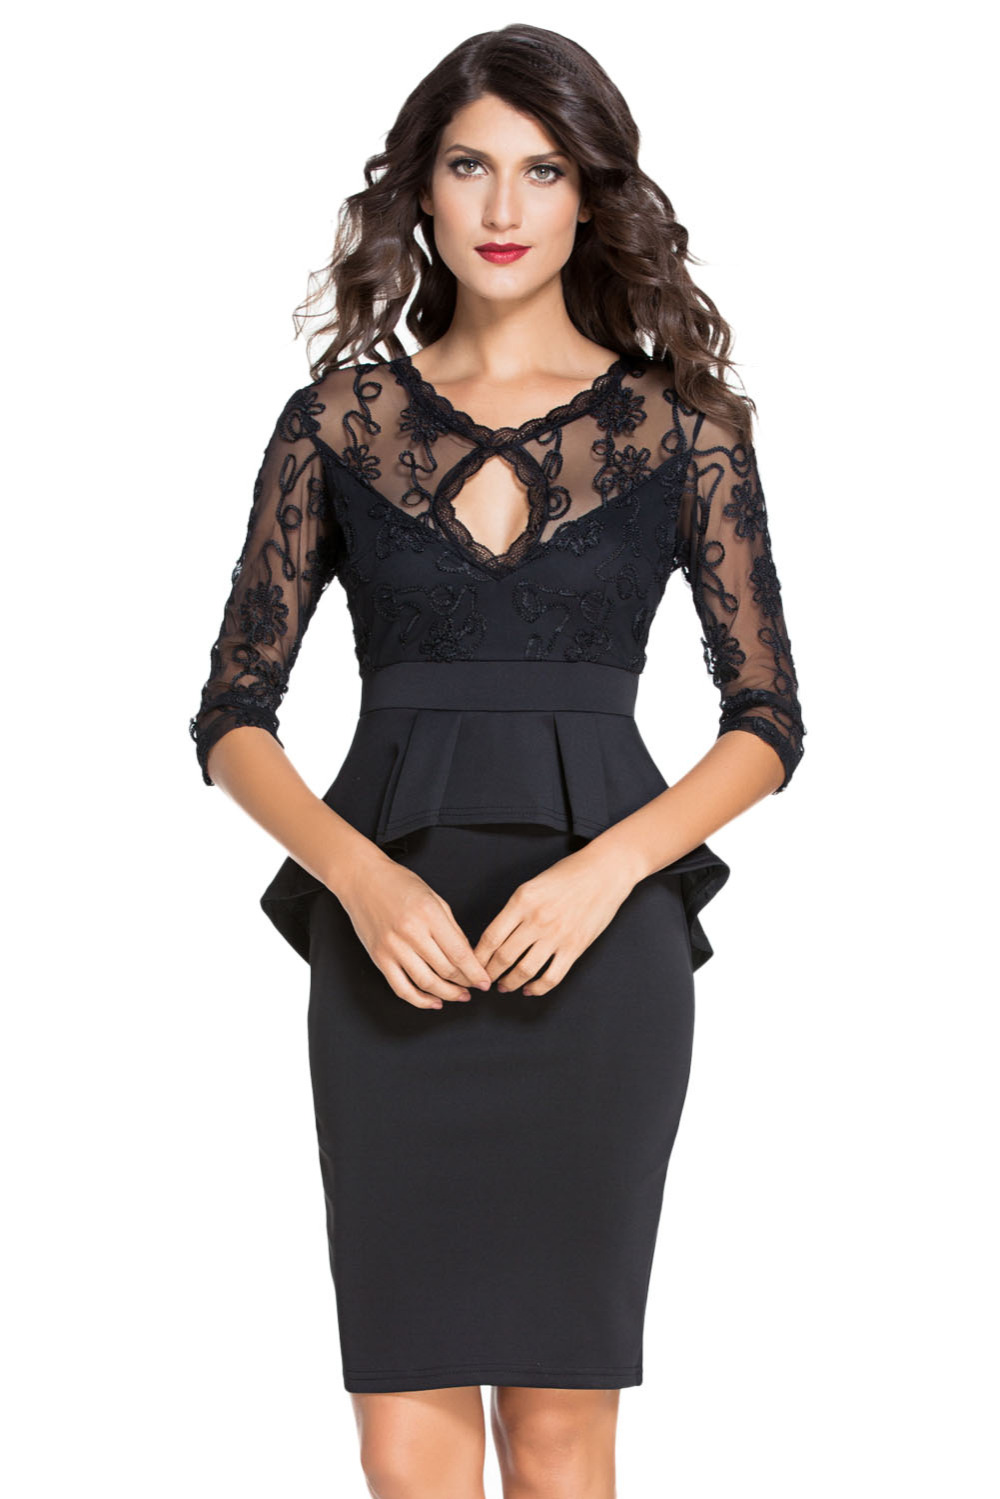 Black dress office - Sexy Knee Length Work Wear Backless Office Pencil 3 4 Three Quarter Sleeve Embroidery